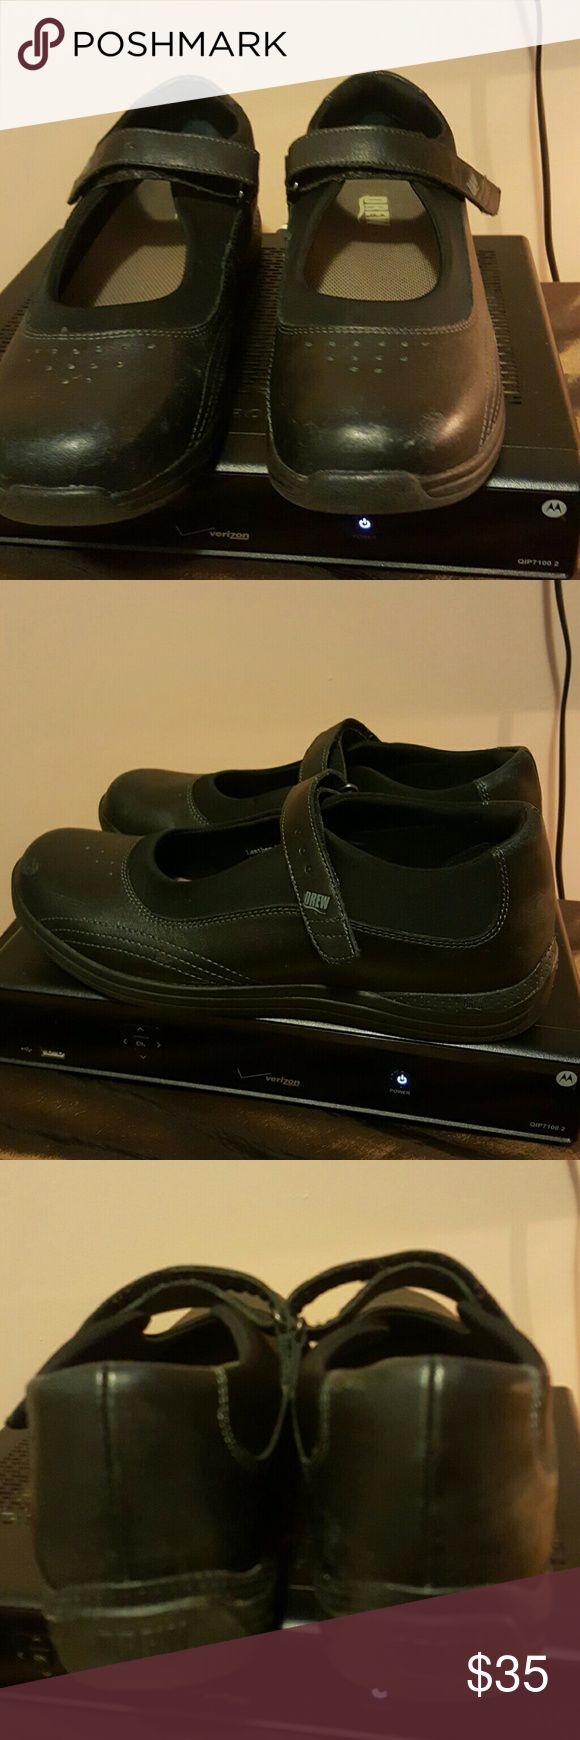 Orthopedic shoe Black orthopedic shoe, in excellent condition DREW Shoes Athletic Shoes